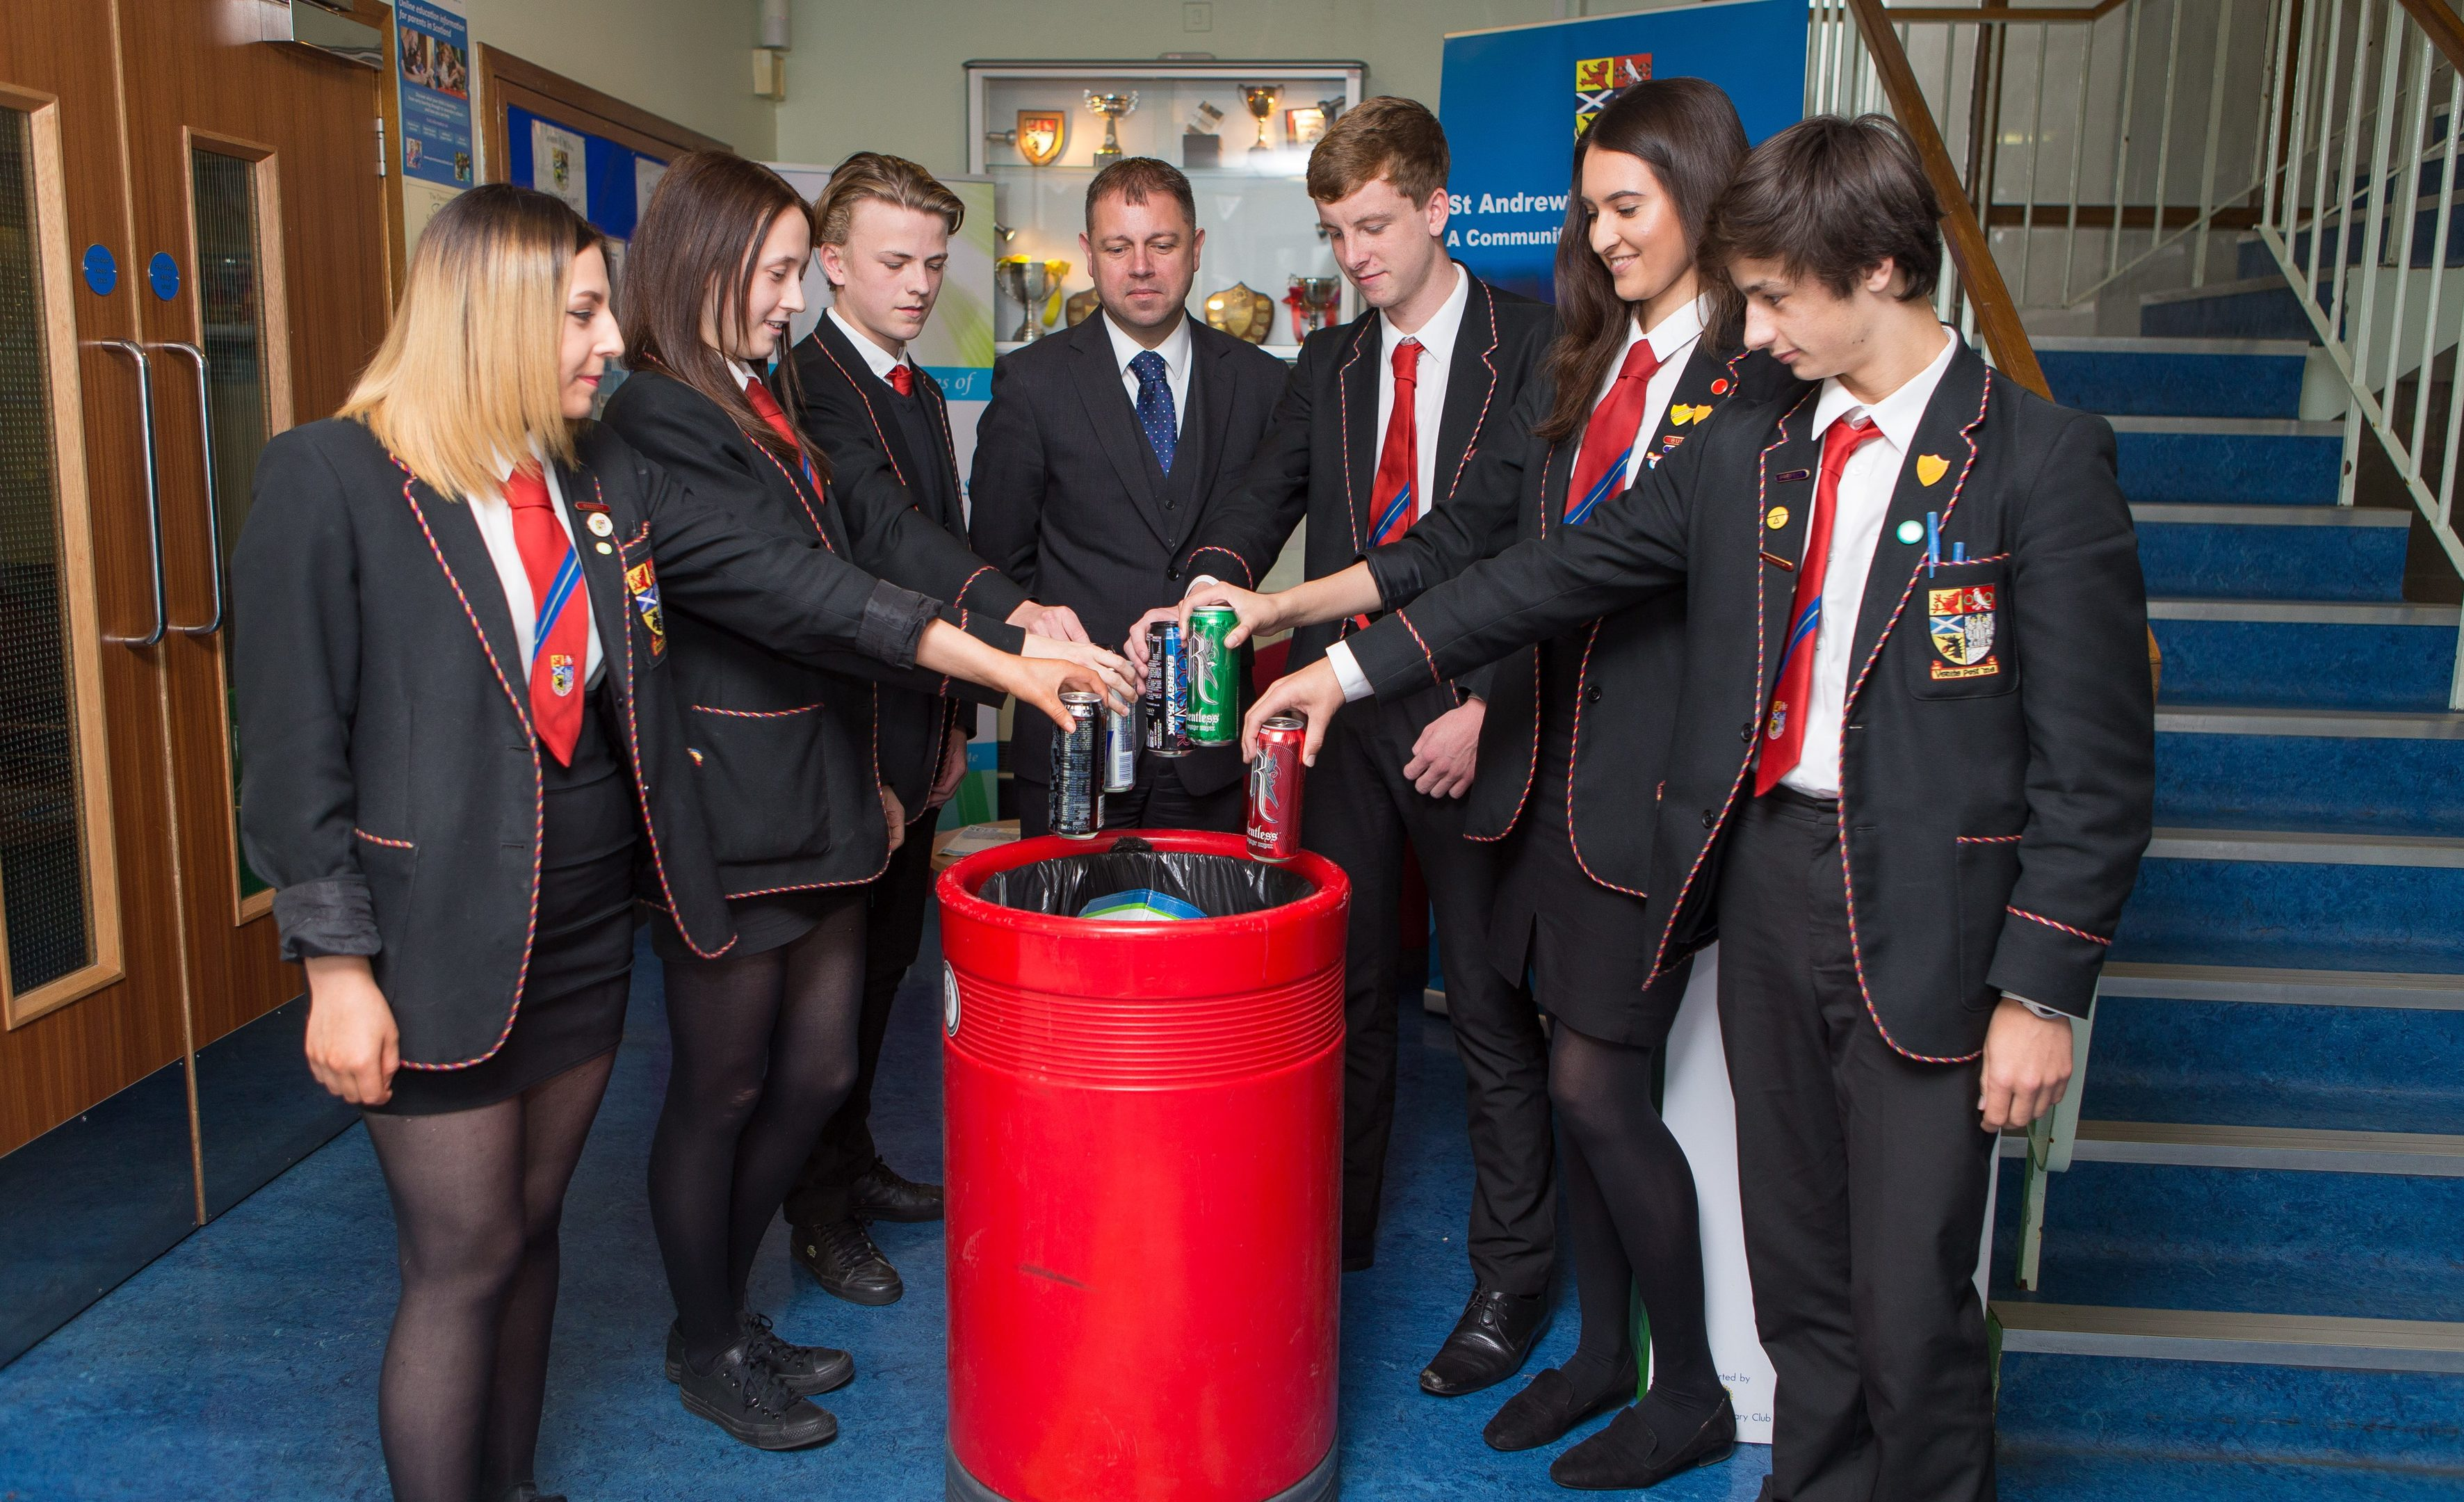 Pupils from St Andrews High School in Kirkcaldy fully support The Courier 'Can It' campaign to have energy drinks banned from the school. Pictured from left are Brooklin Faulds, Jill Clelland, Callum Perkind, rector Patrick Callaghan, Eoin Garvey, Anna Machado and Daniel Penman.